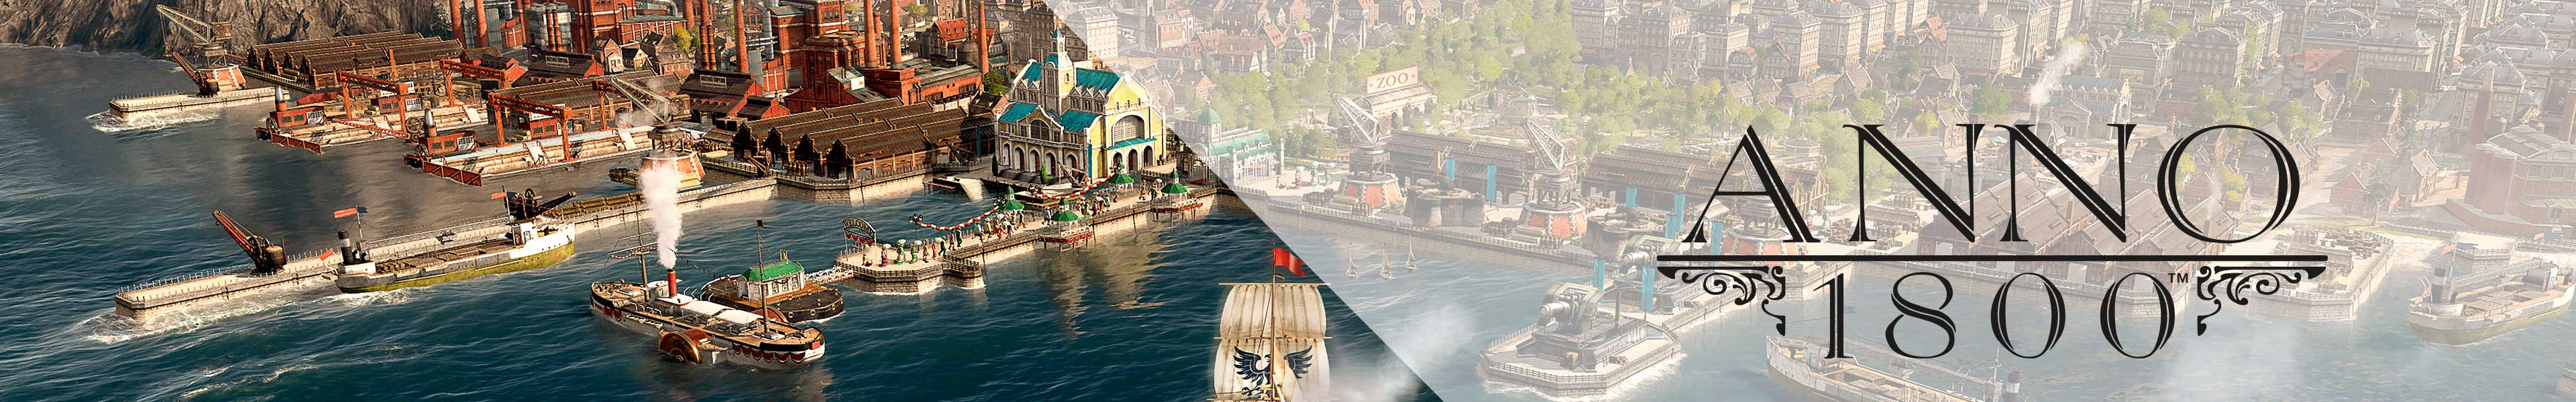 Anno 1800 Category banner